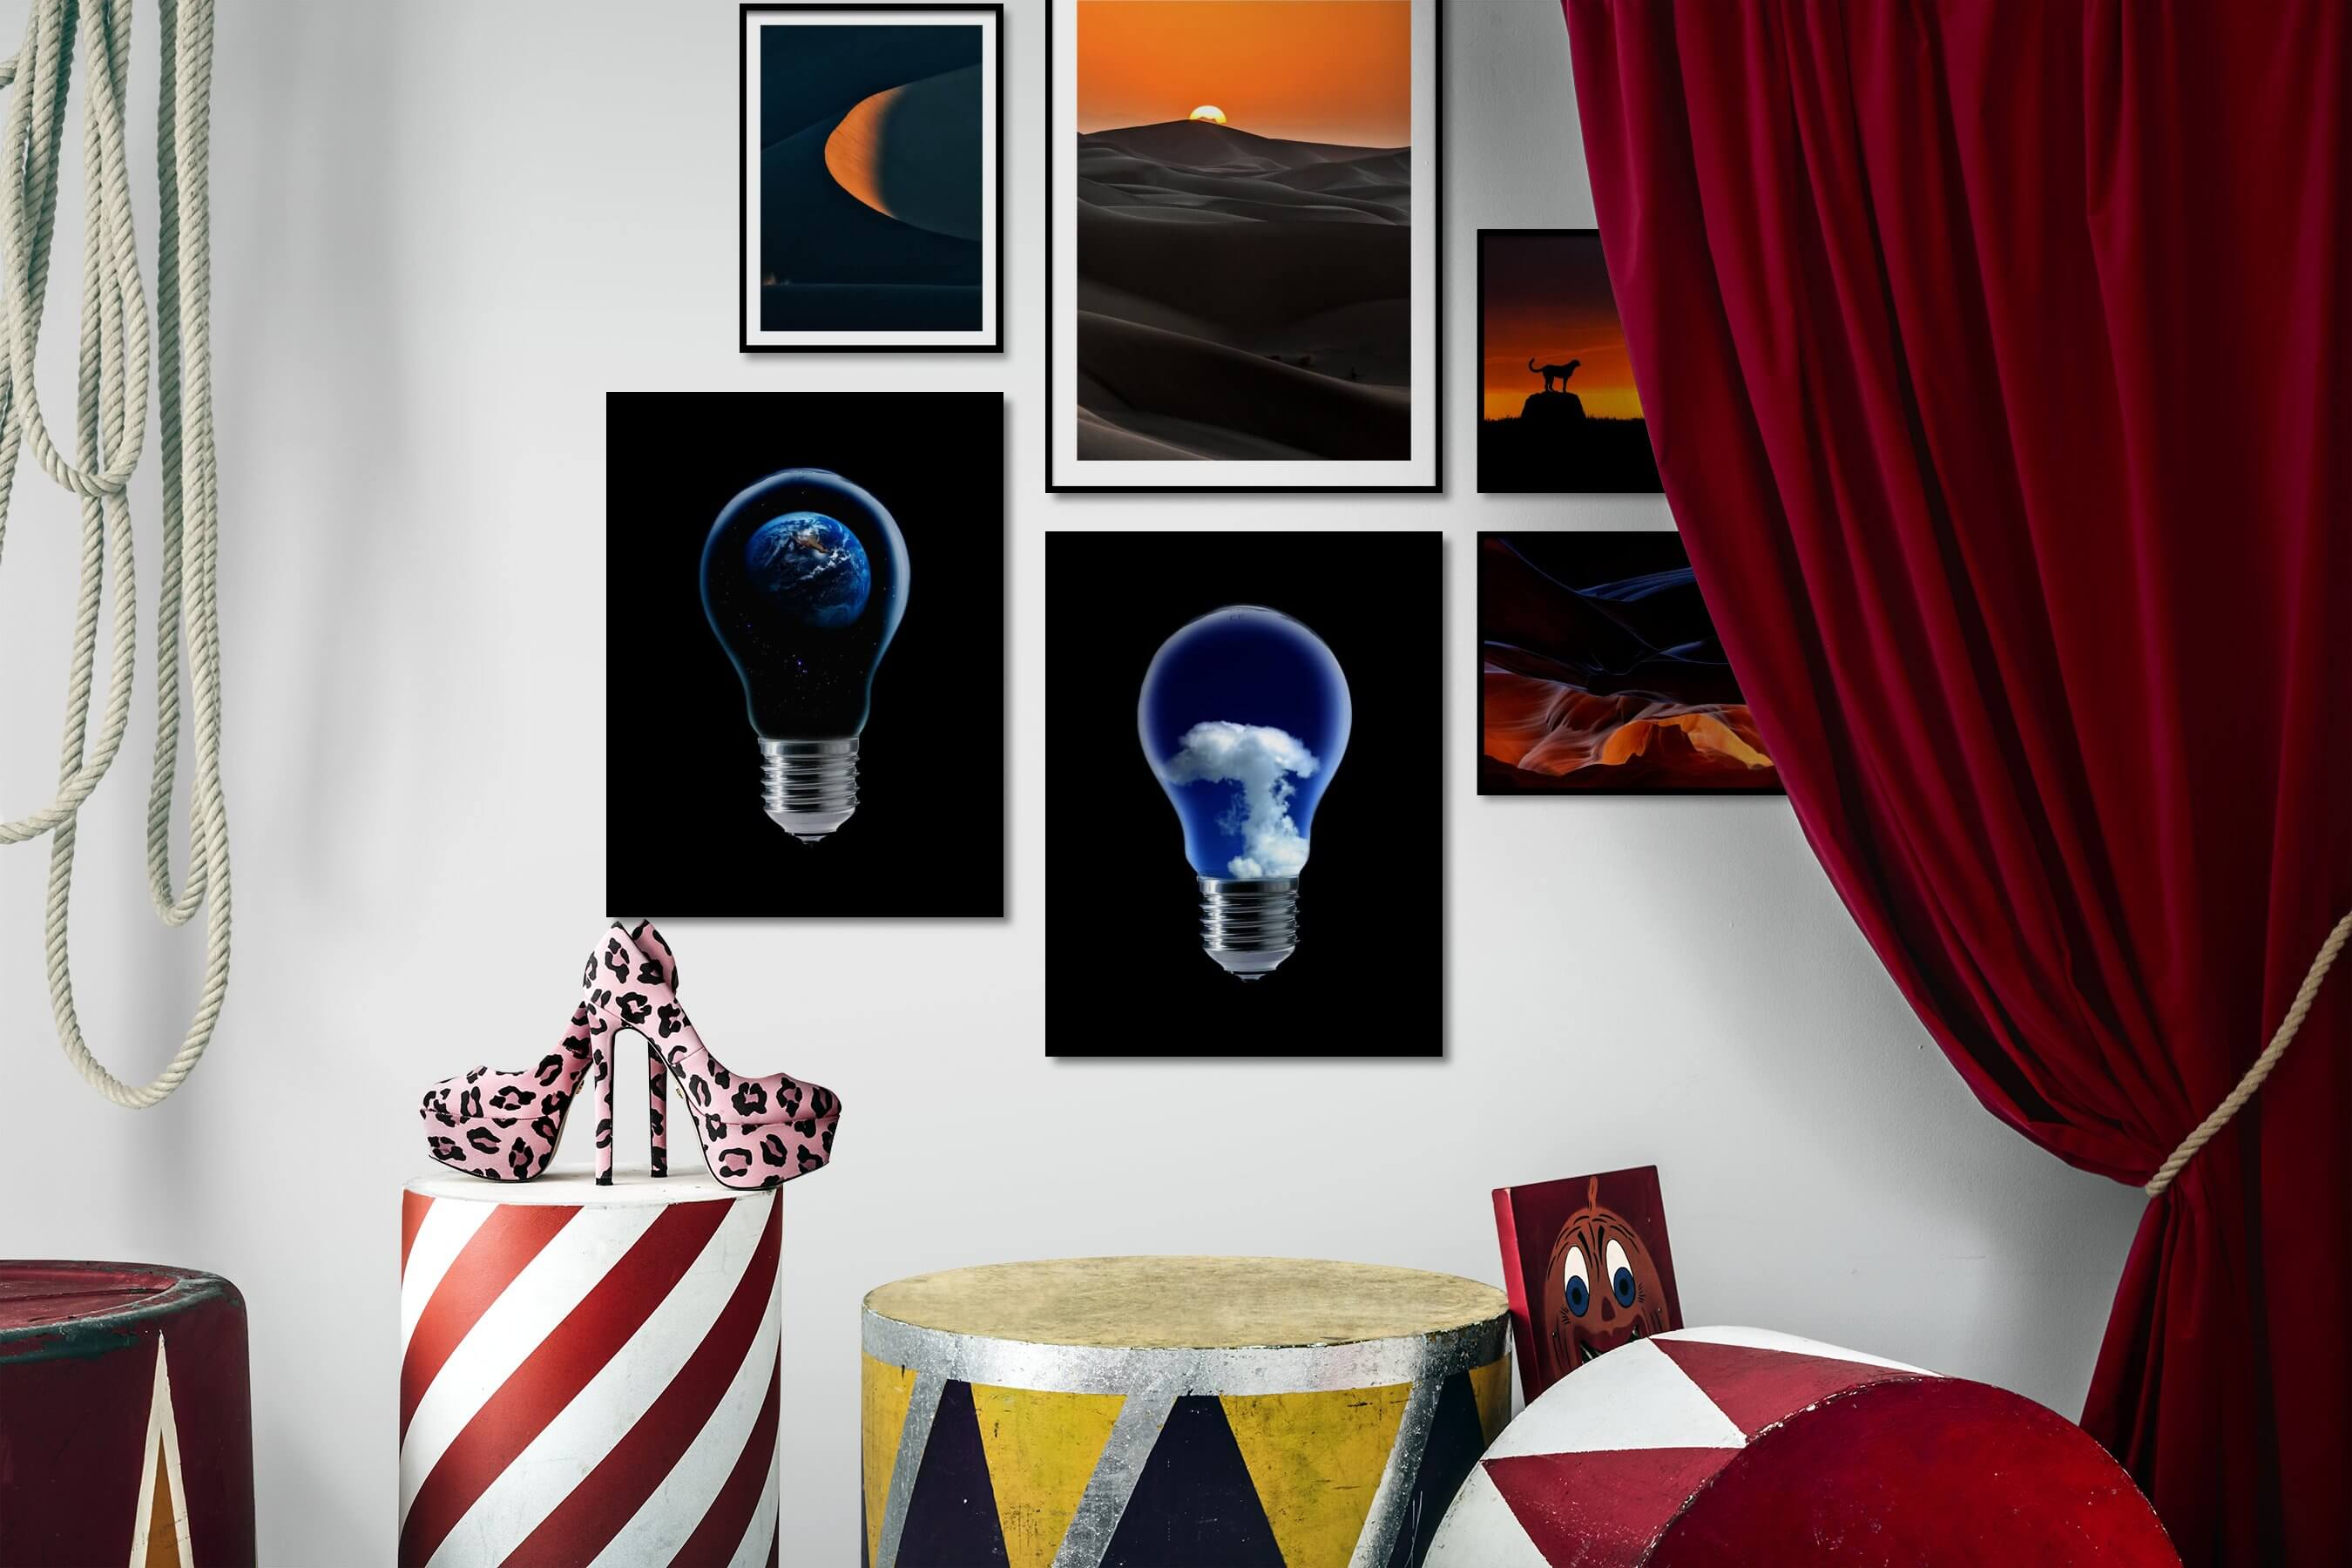 Gallery wall idea with six framed pictures arranged on a wall depicting For the Minimalist, Nature, For the Moderate, Dark Tones, and Animals